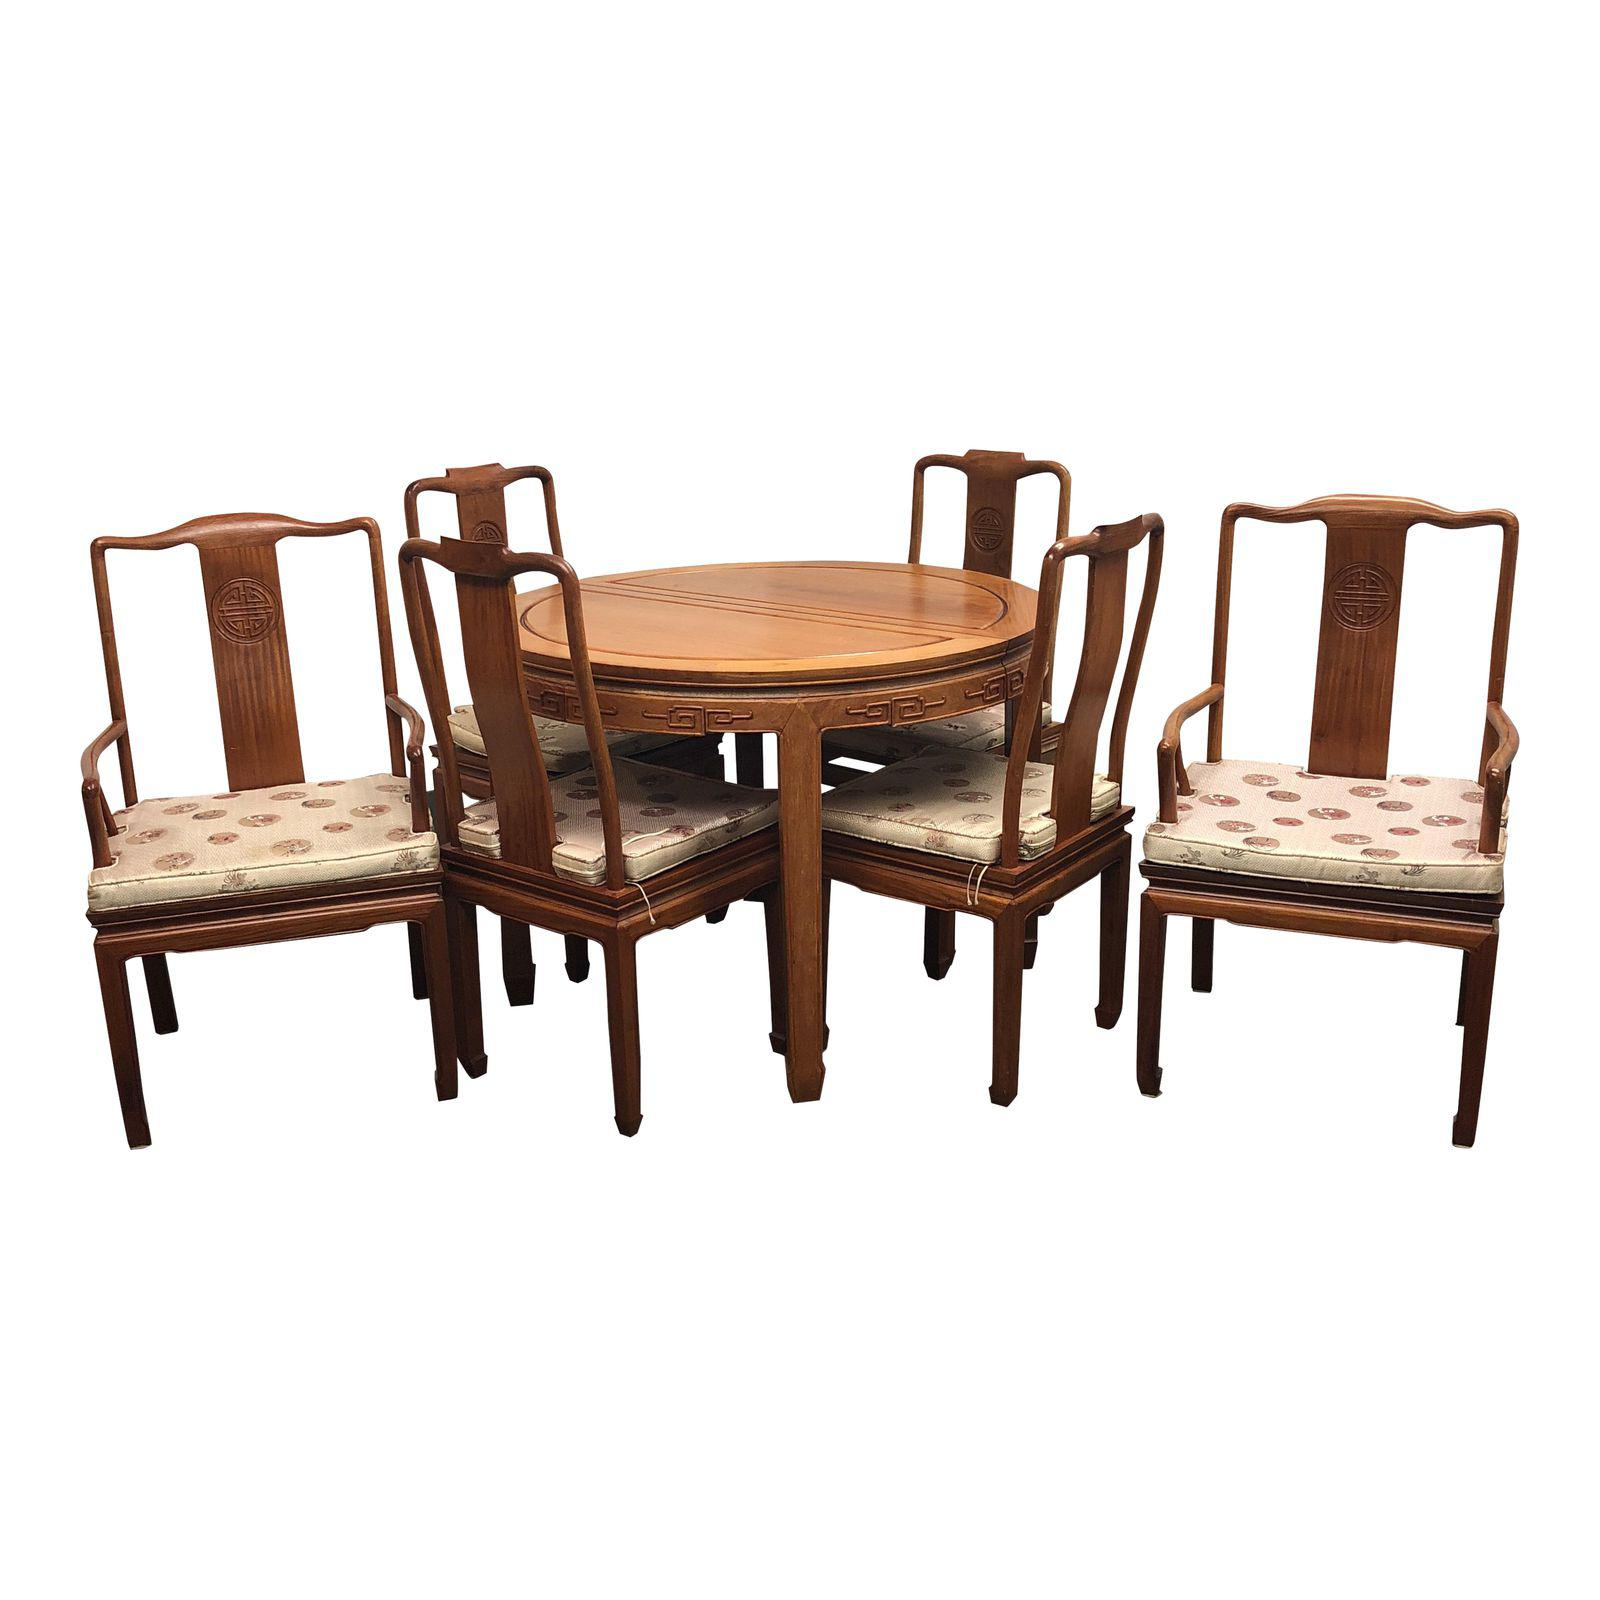 Chinese Rosewood Dining Table And 6 Chairs Dining Set 9532 1 ...